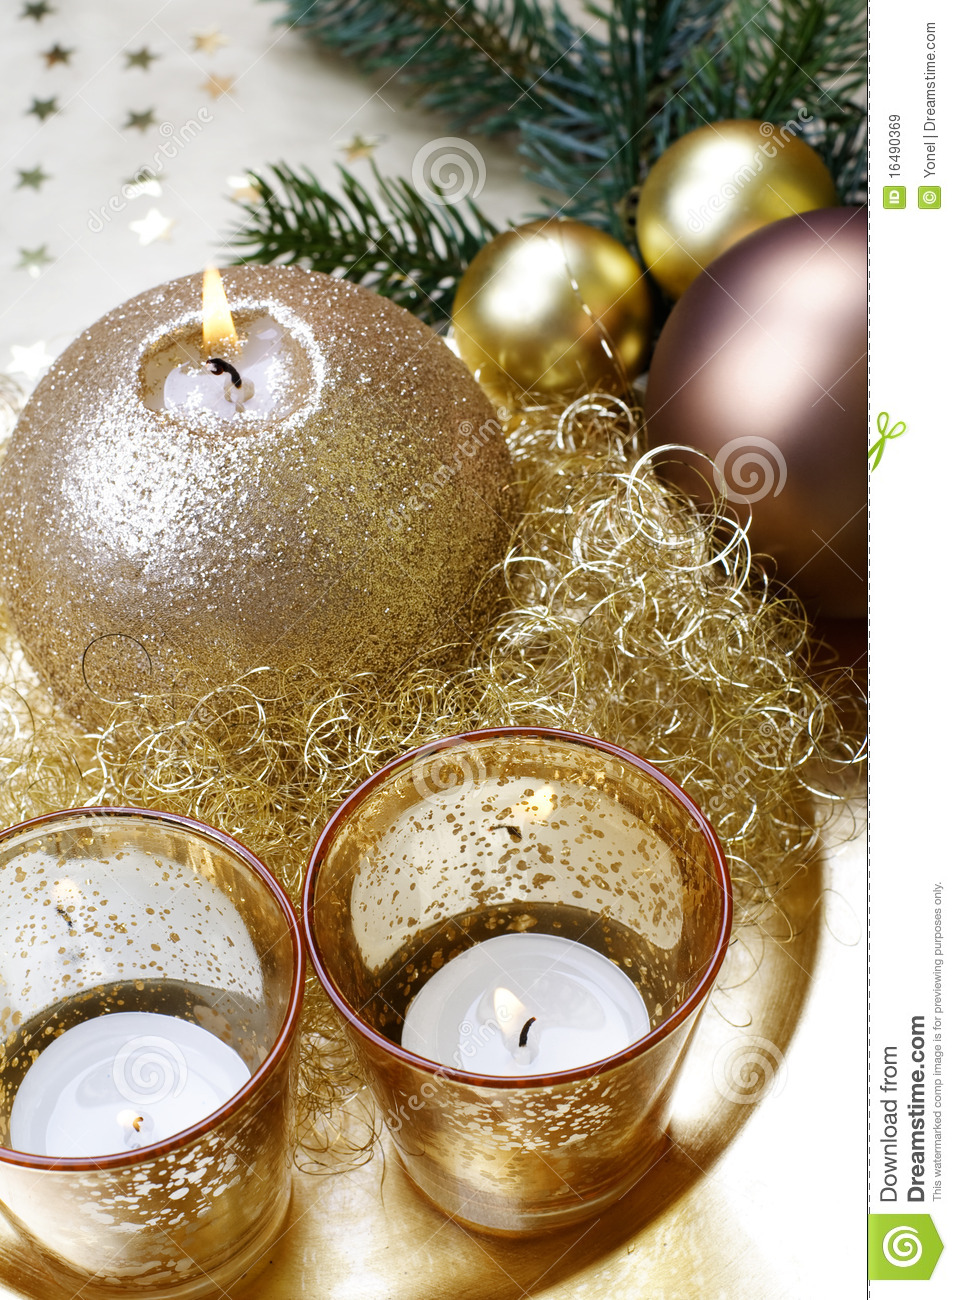 Baroque Christmas Candle, Still Life. Stock Image - Image of ball ...